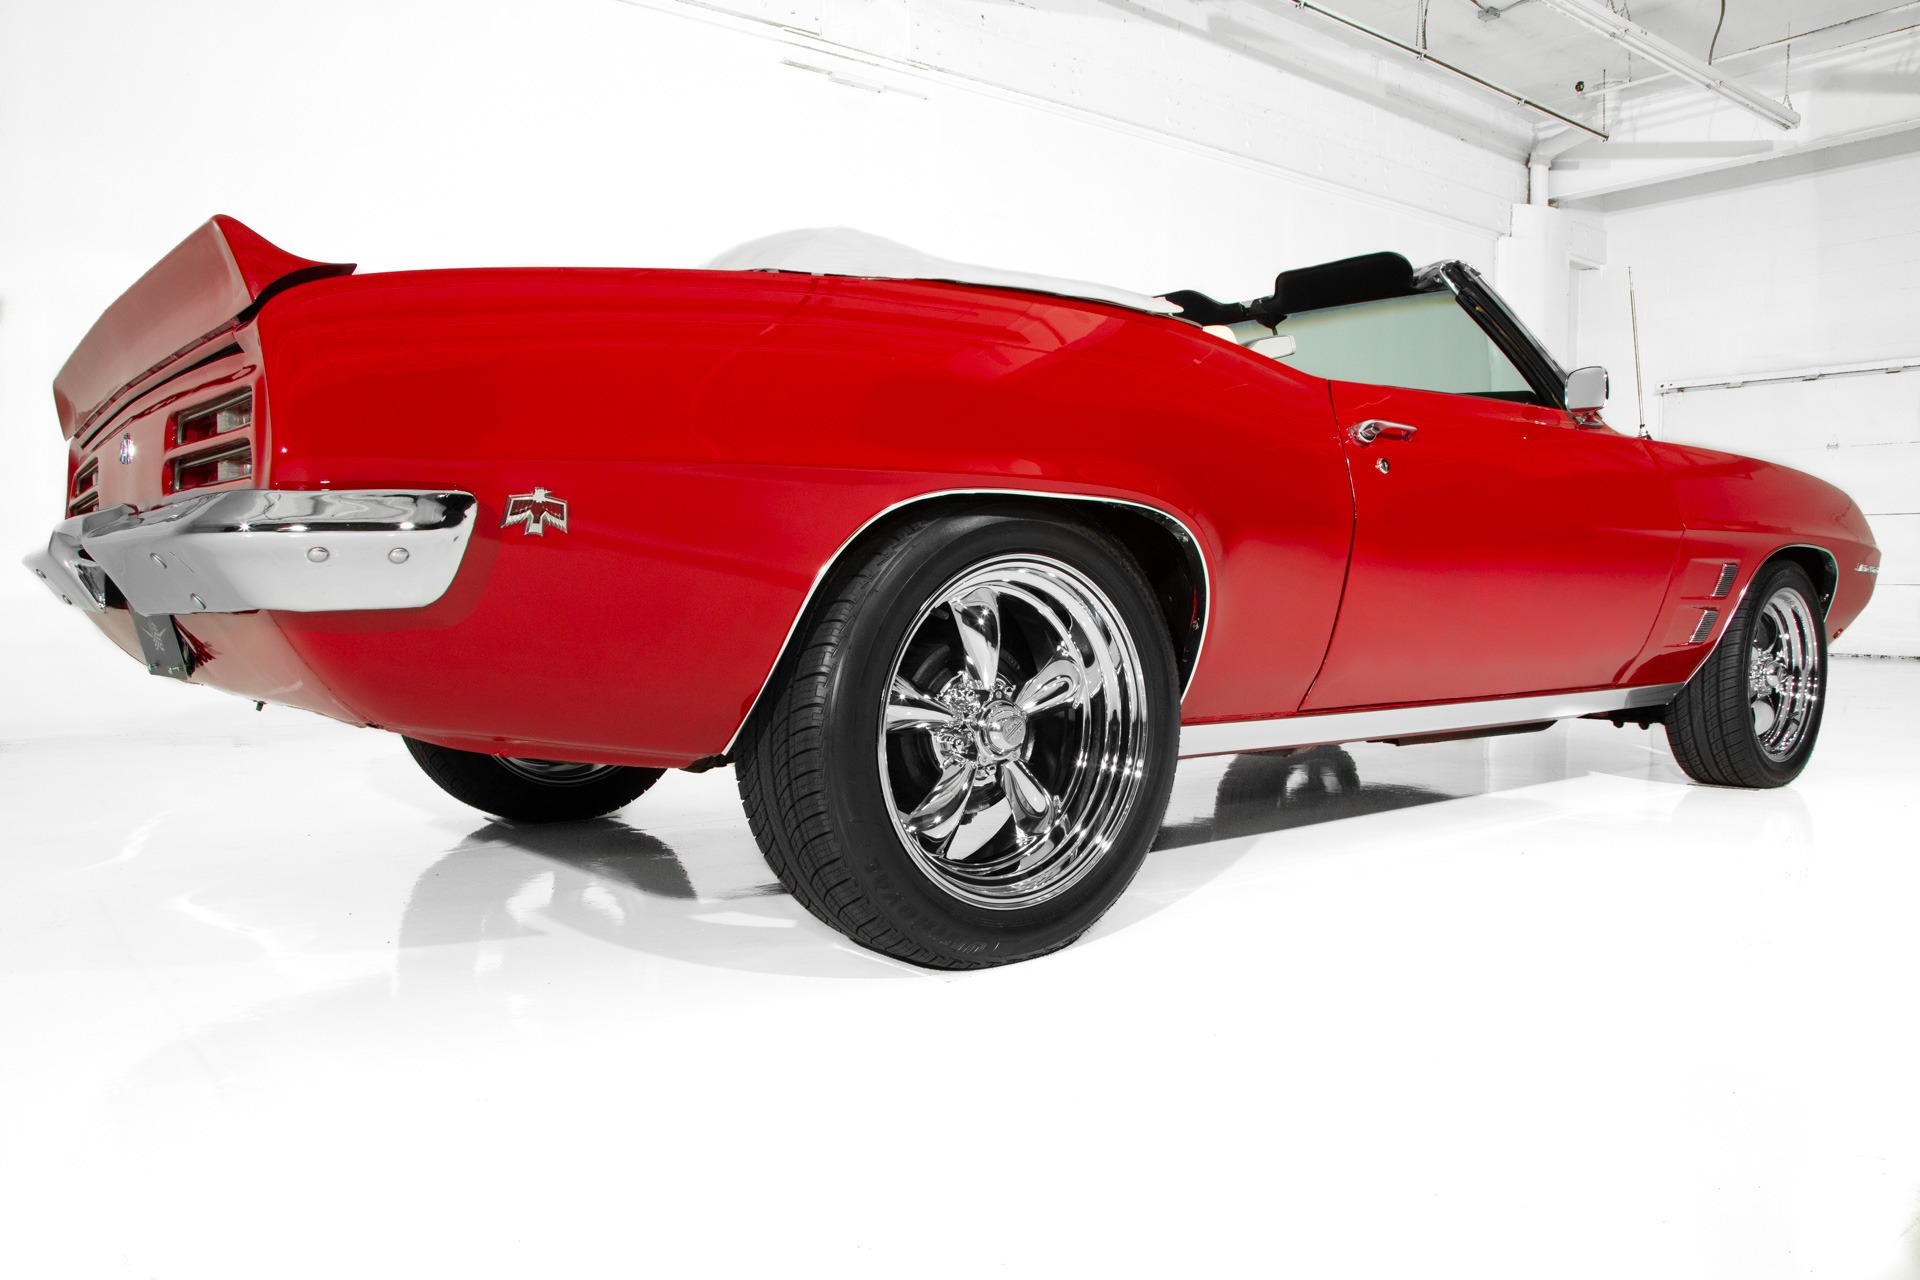 For Sale Used 1969 Pontiac Firebird # Match PS PB Chrome | American Dream Machines Des Moines IA 50309